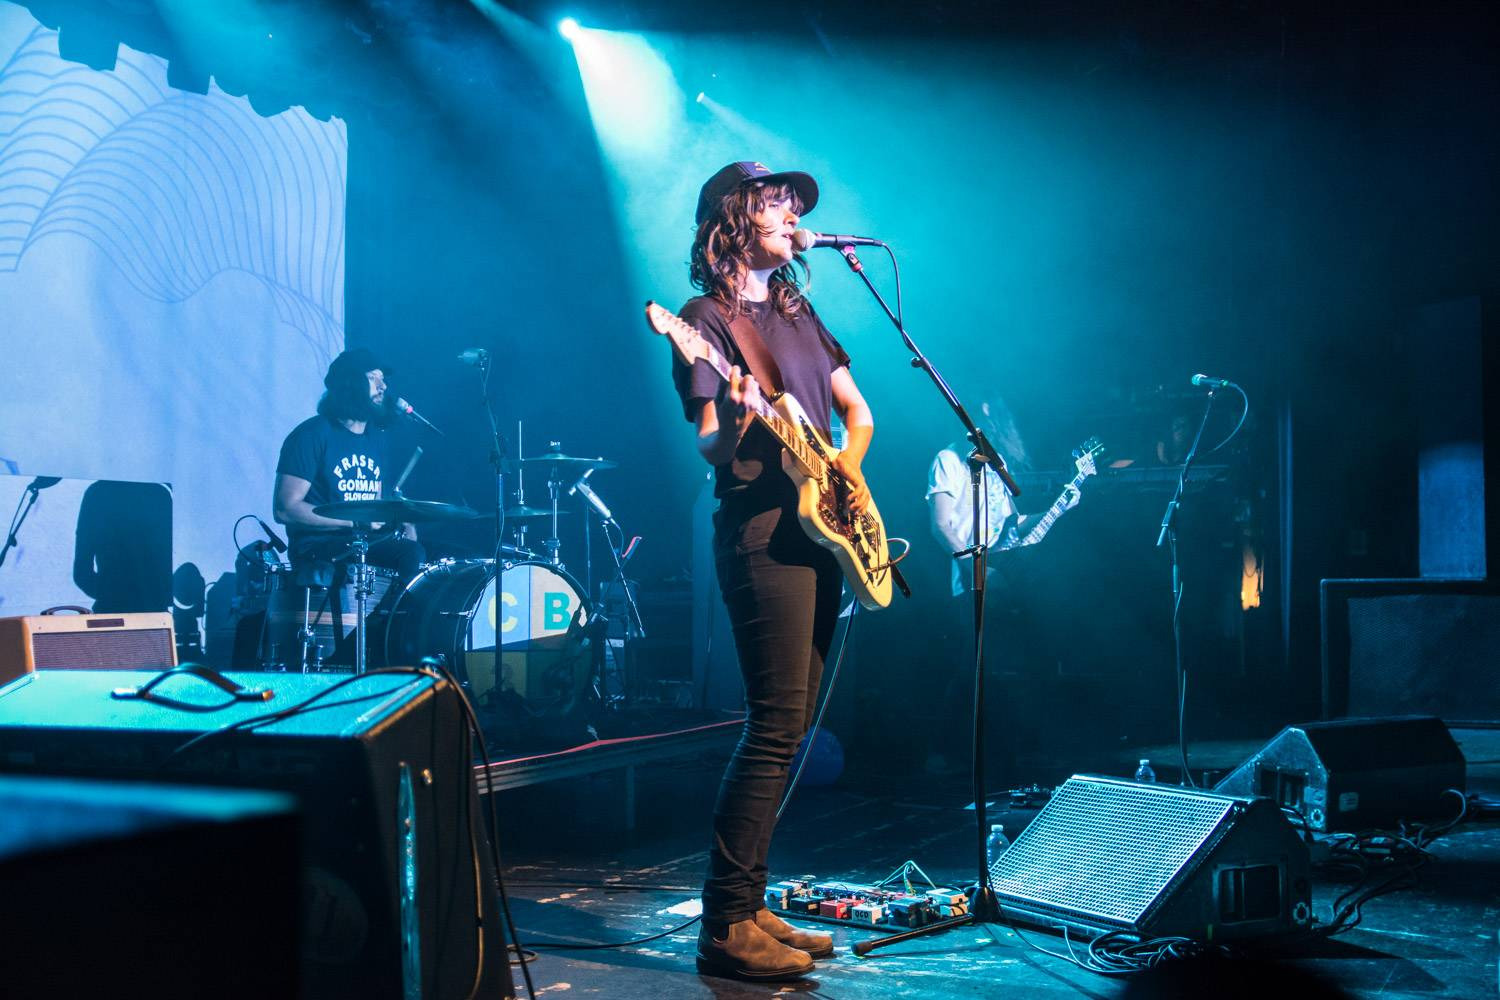 Courtney Barnett at the Commodore Ballroom, Vancouver, Apr. 19 2016. Pavel Boiko photo.